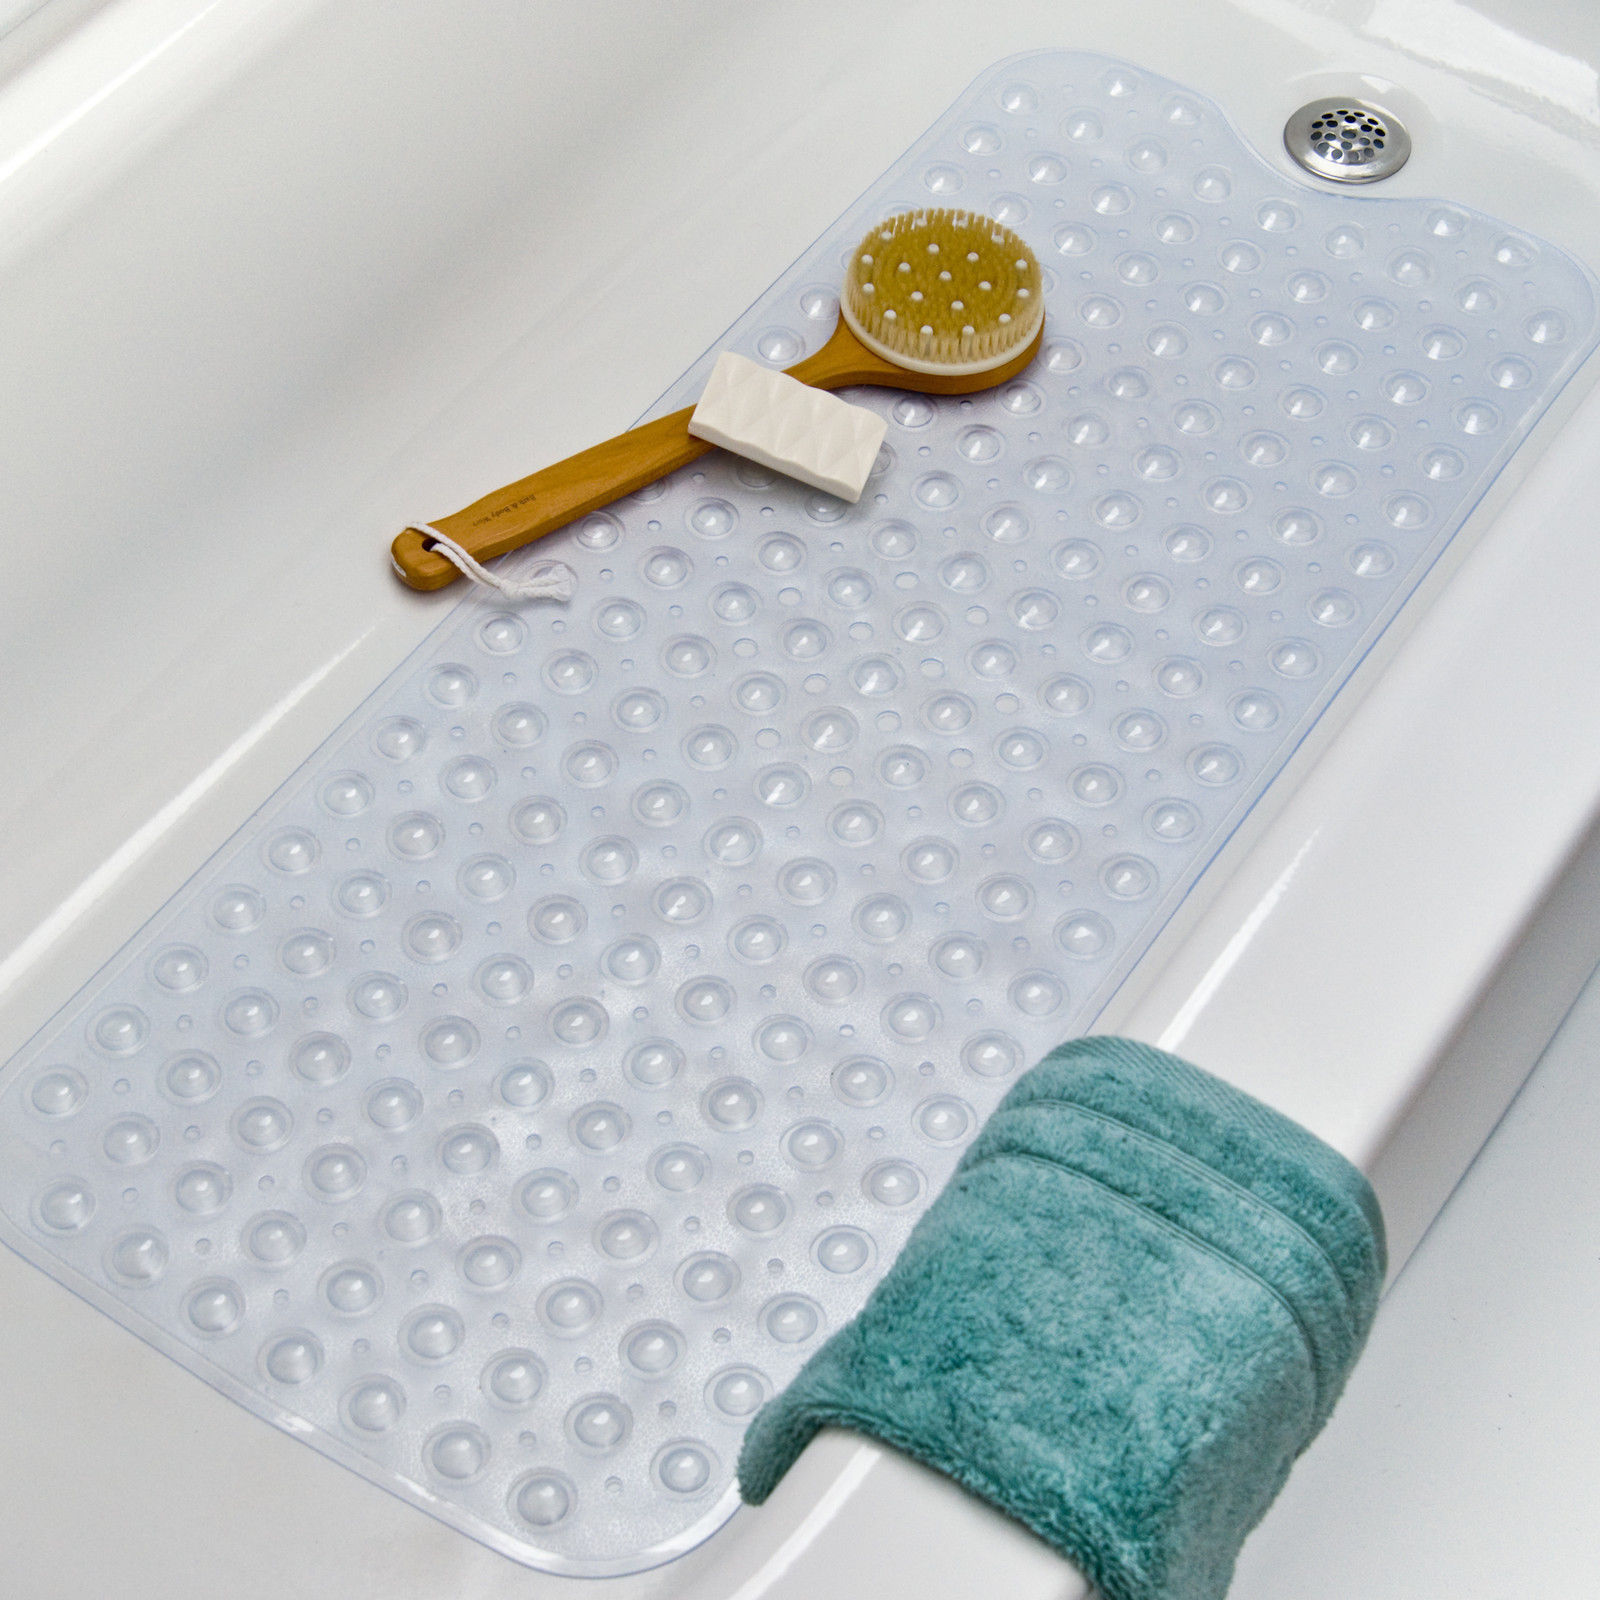 Genial Ktaxon Bath Tub Clear Bath Mat Non Slip Safety Anti Skid Shower Protection  Extra Long